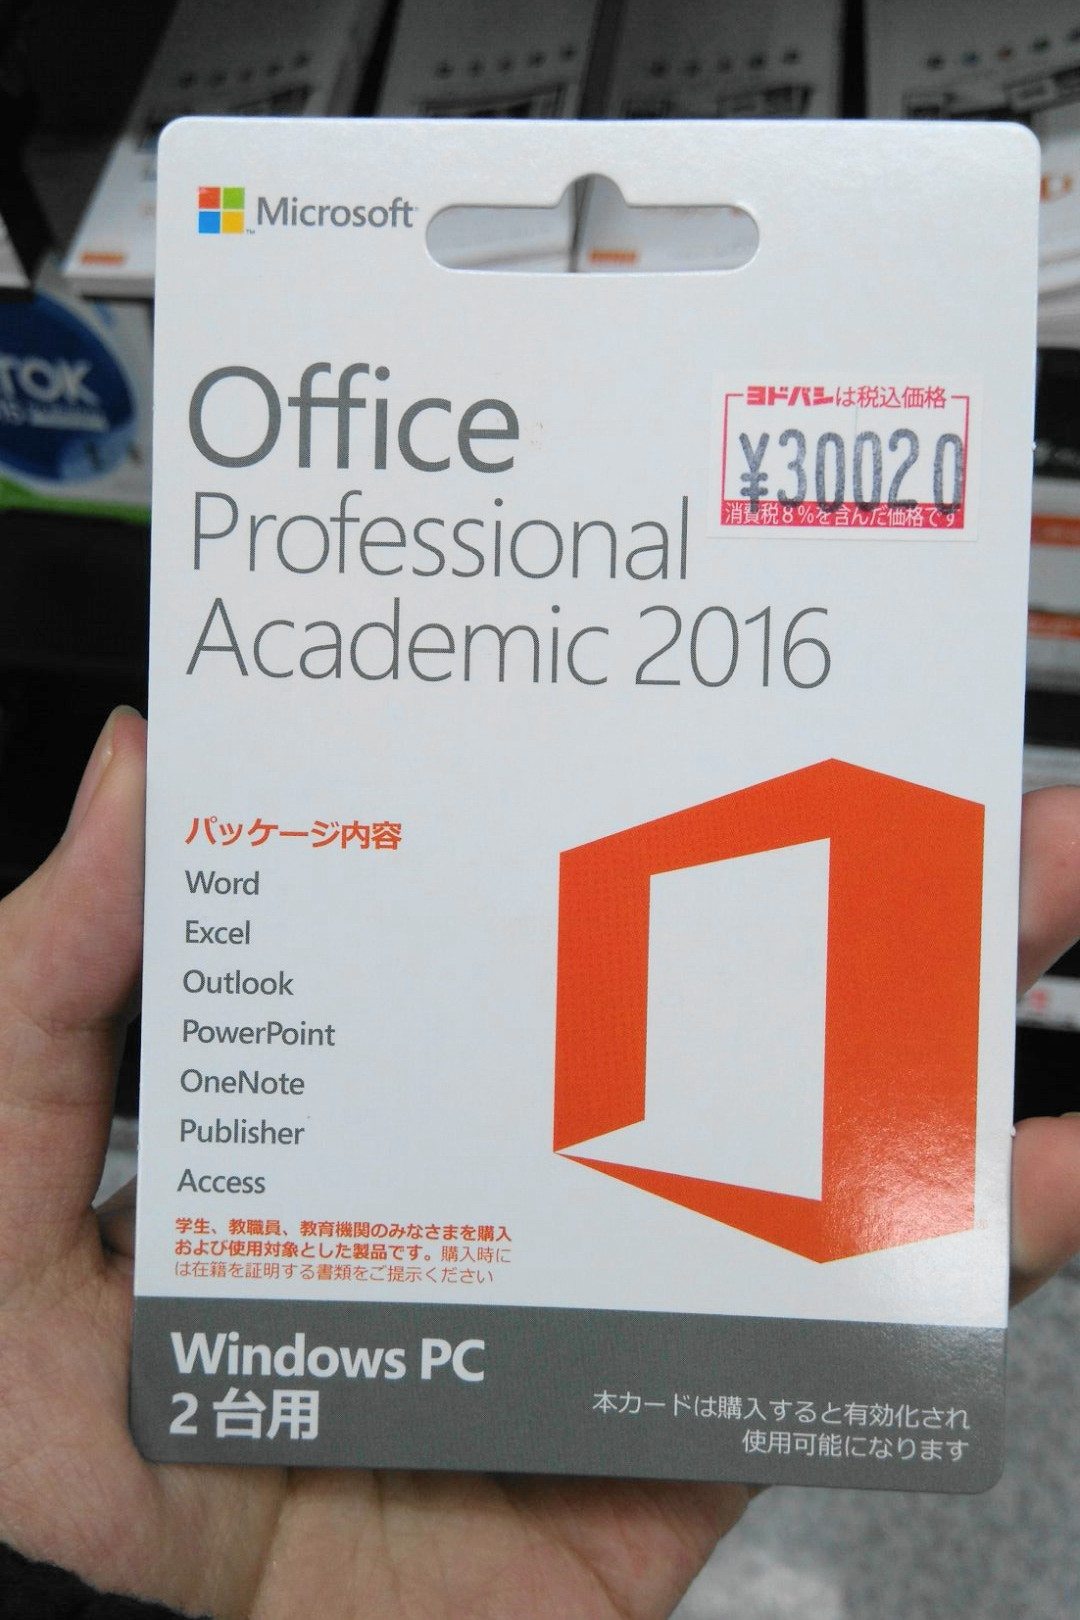 Mac 用の Office  、Office for Mac